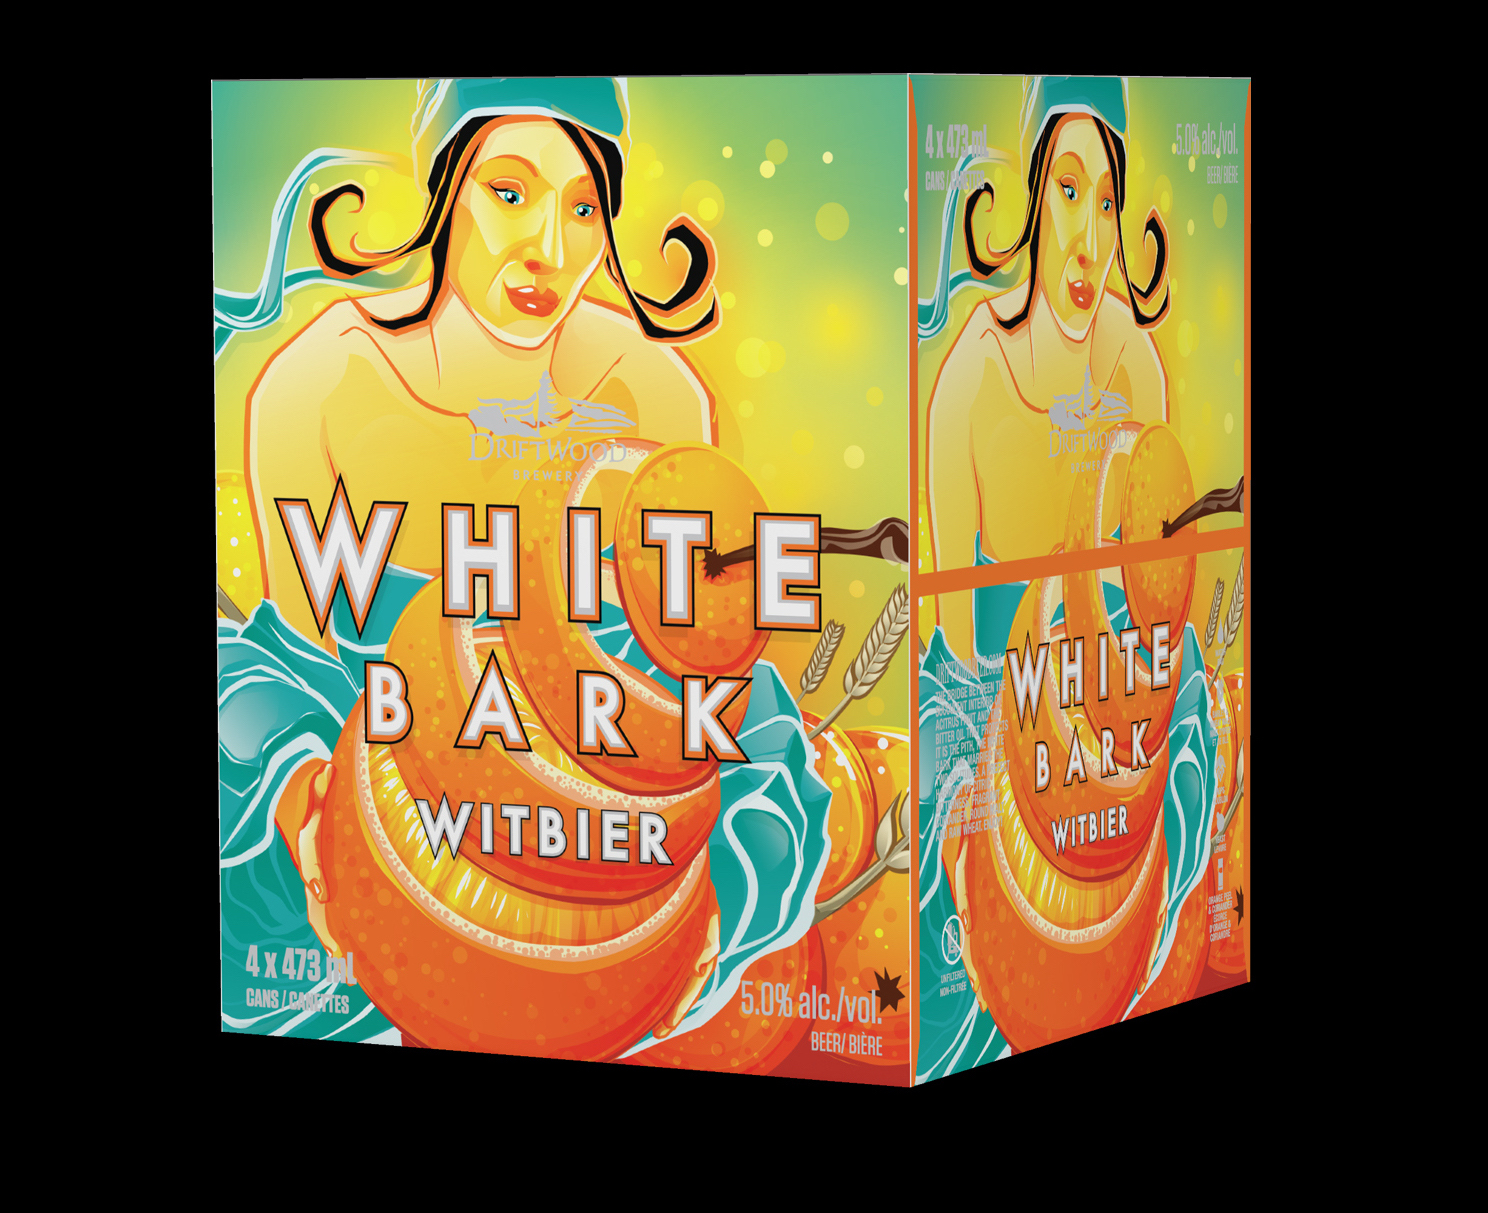 Box Design for Driftwood Brewery's White Bark